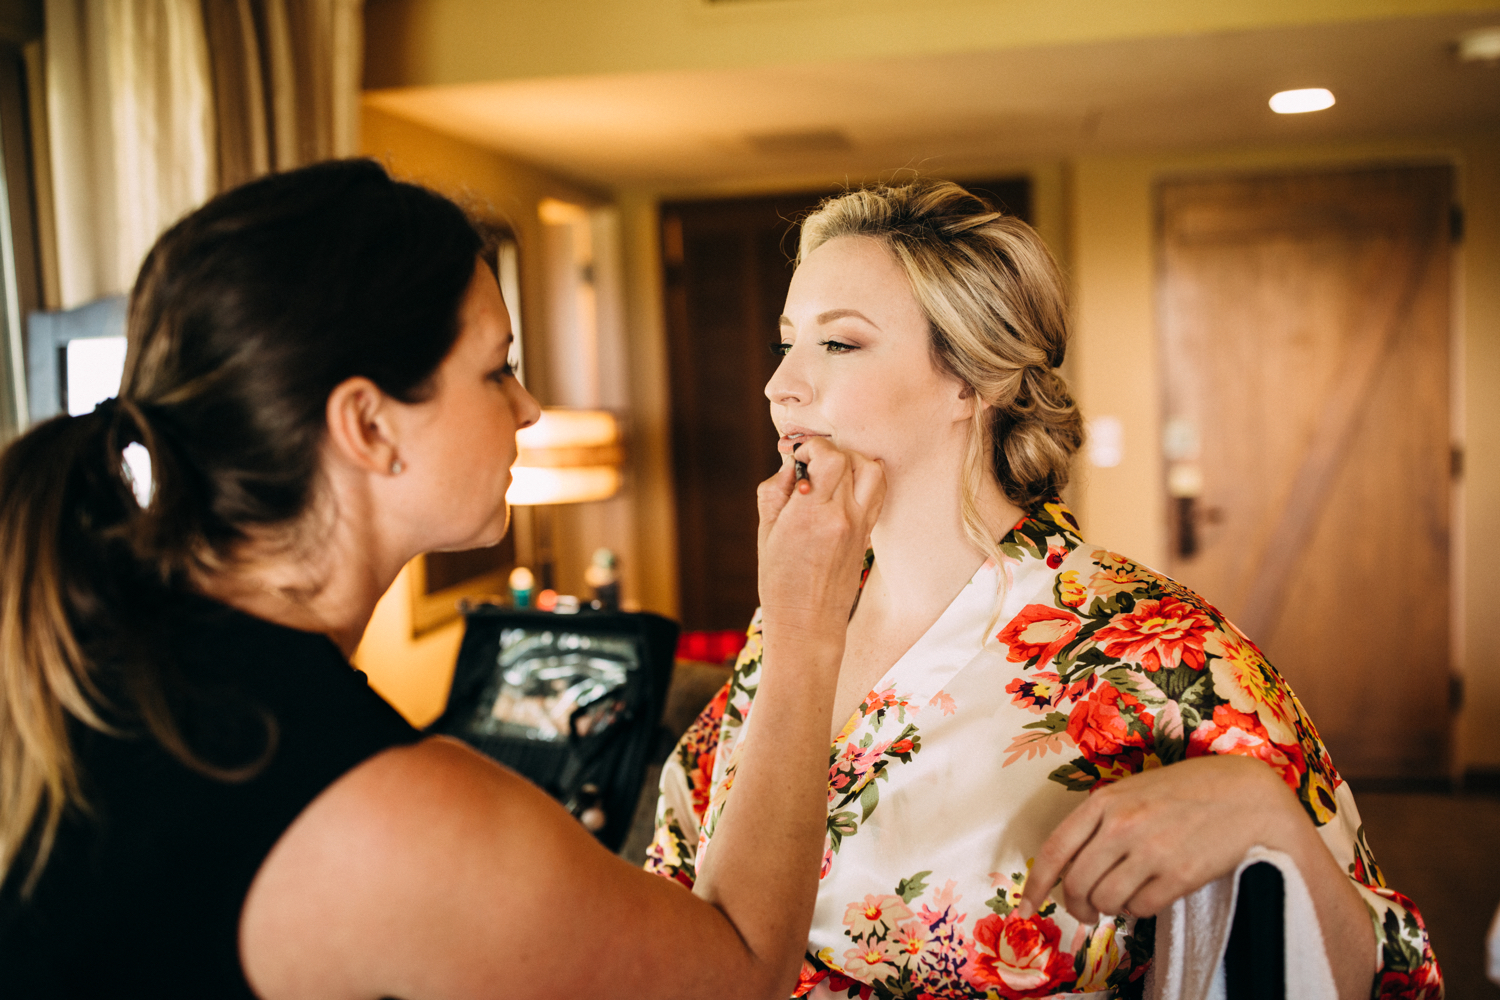 Wedding Temecula Creek Inn Orange County San Diego Los Angeles Photographer Elopement Marriage Photography Engagement Destination  - 2.jpg